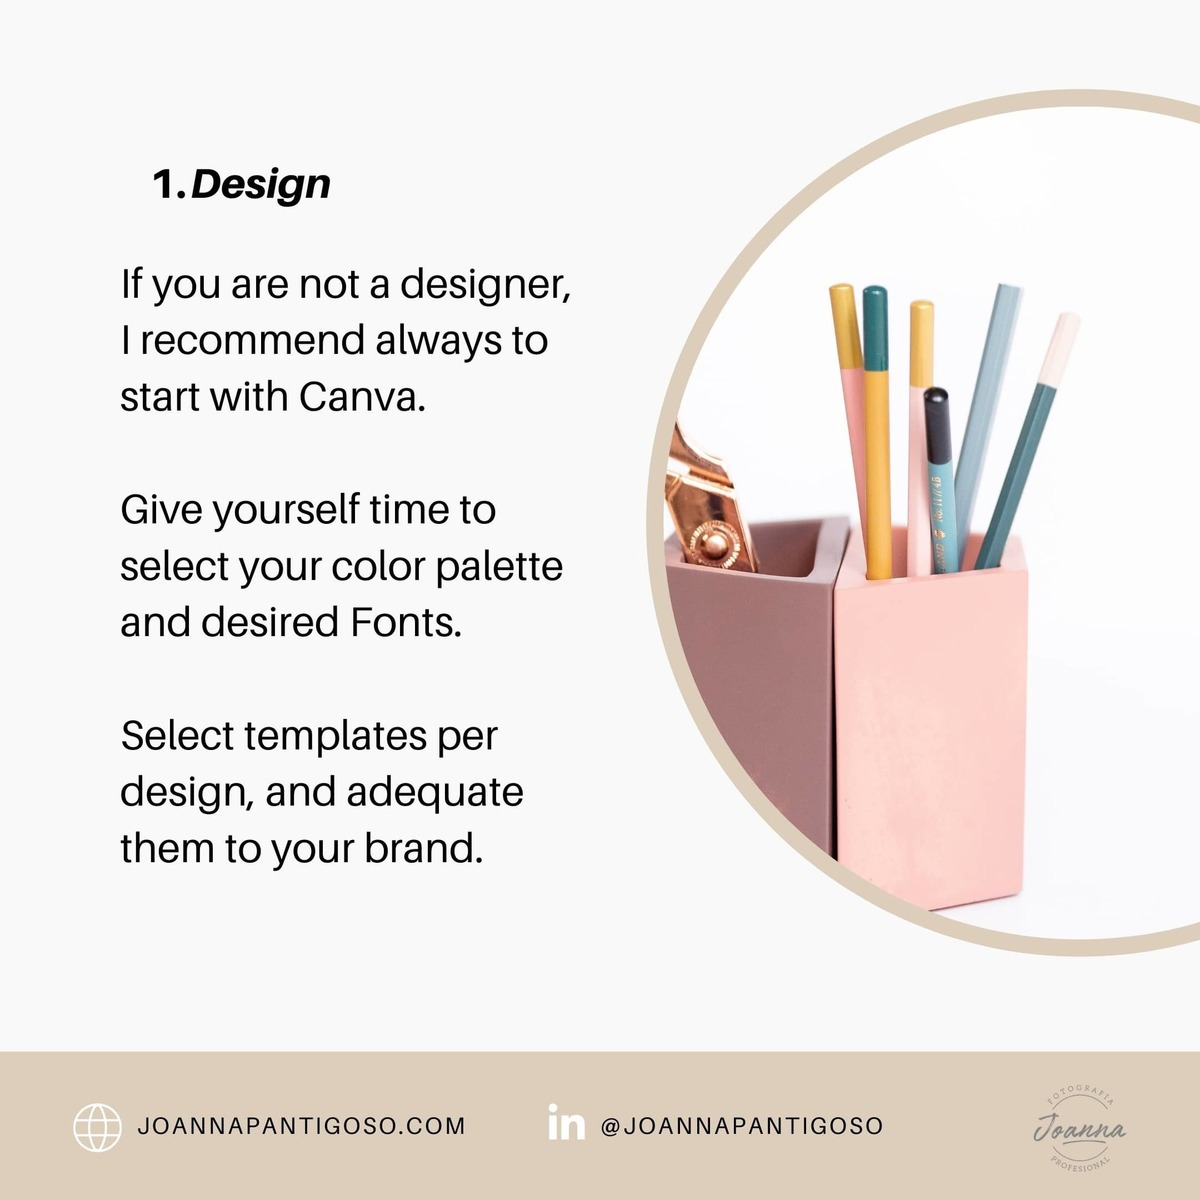 Instagram stories tips voor ondernemen. Design with Canva but personalize it to your brand and message